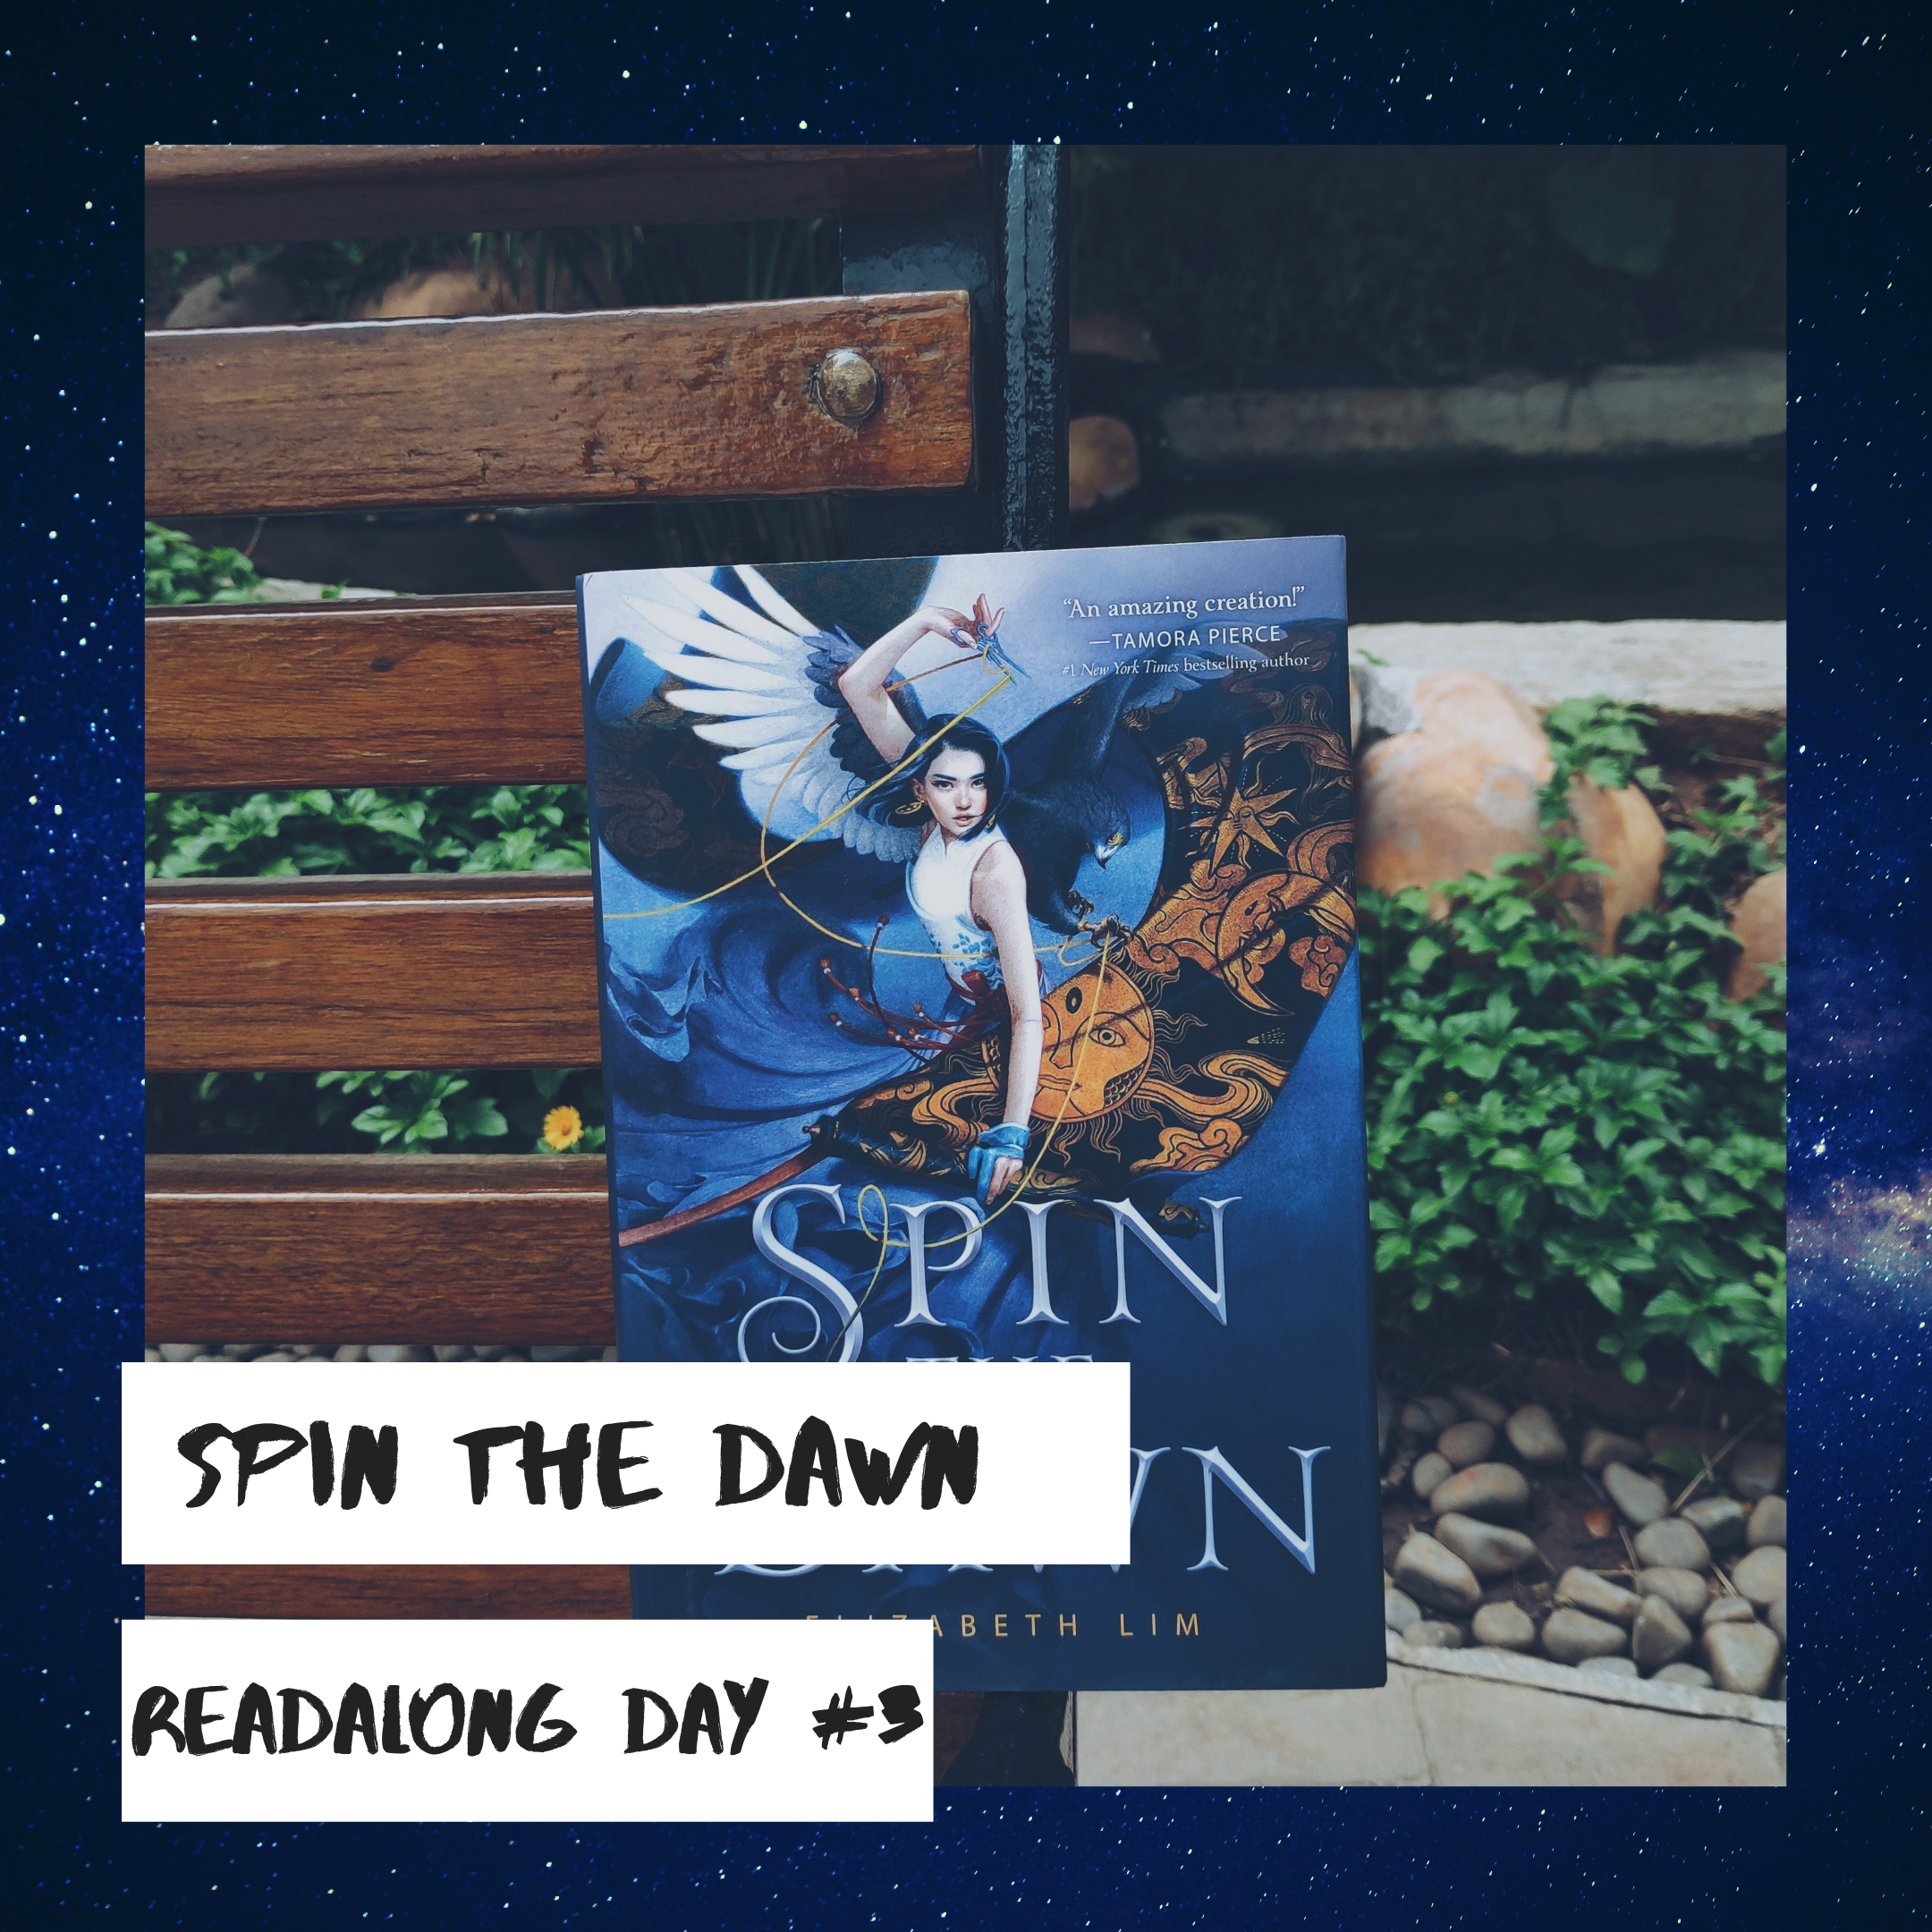 Spin the Dawn Readalong - Day #3